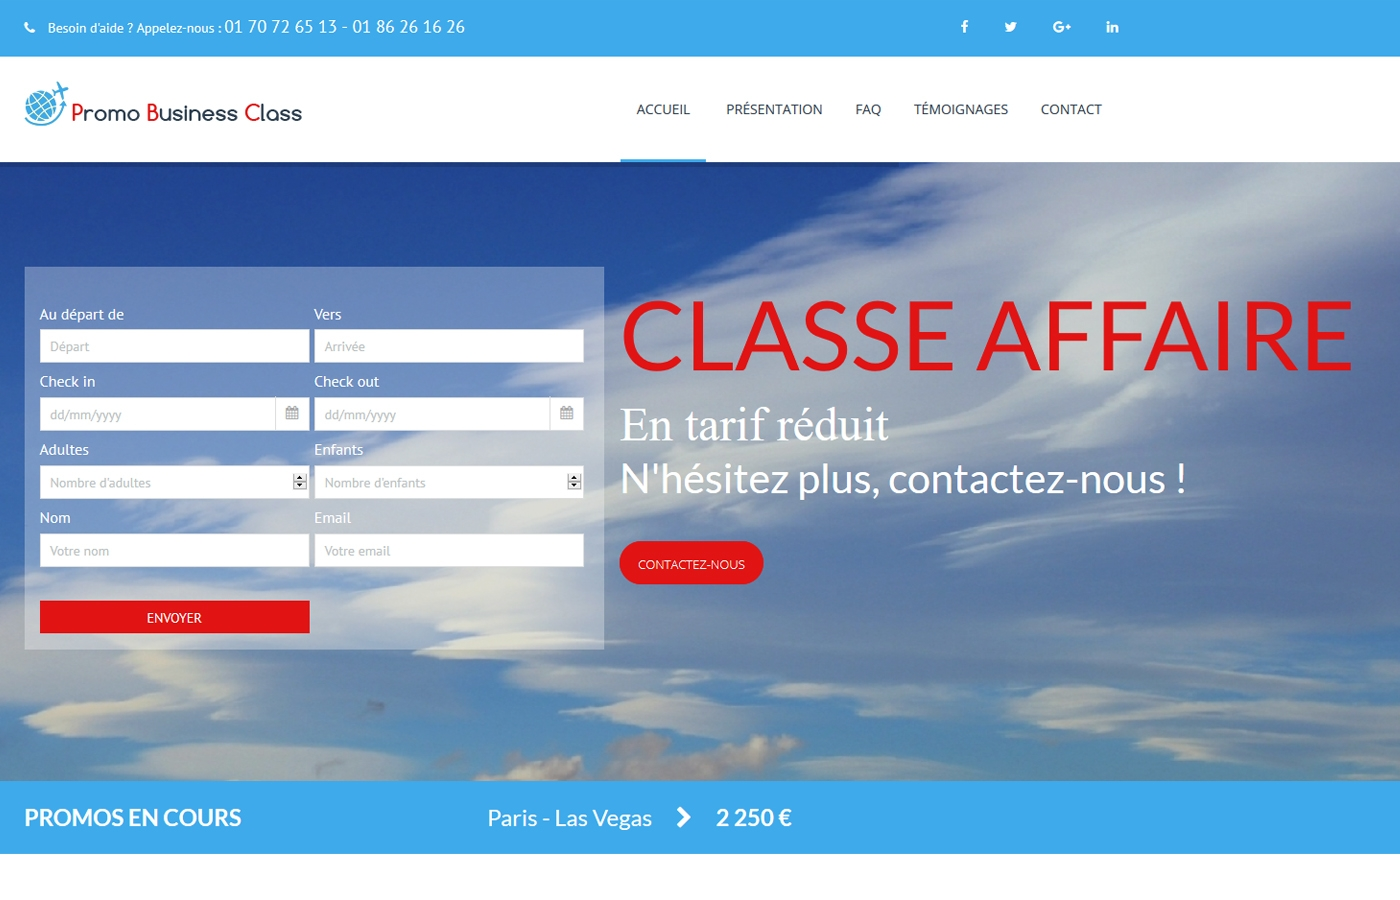 Agence web Marseille - création E-marketing Promo Business Class, Agence web Marseille - création identité visuelle Promo Business Class, Agence web Marseille - création Site Internet vitrine Promo Business Class, Agence web Marseille - création Site Responsive Promo Business Class